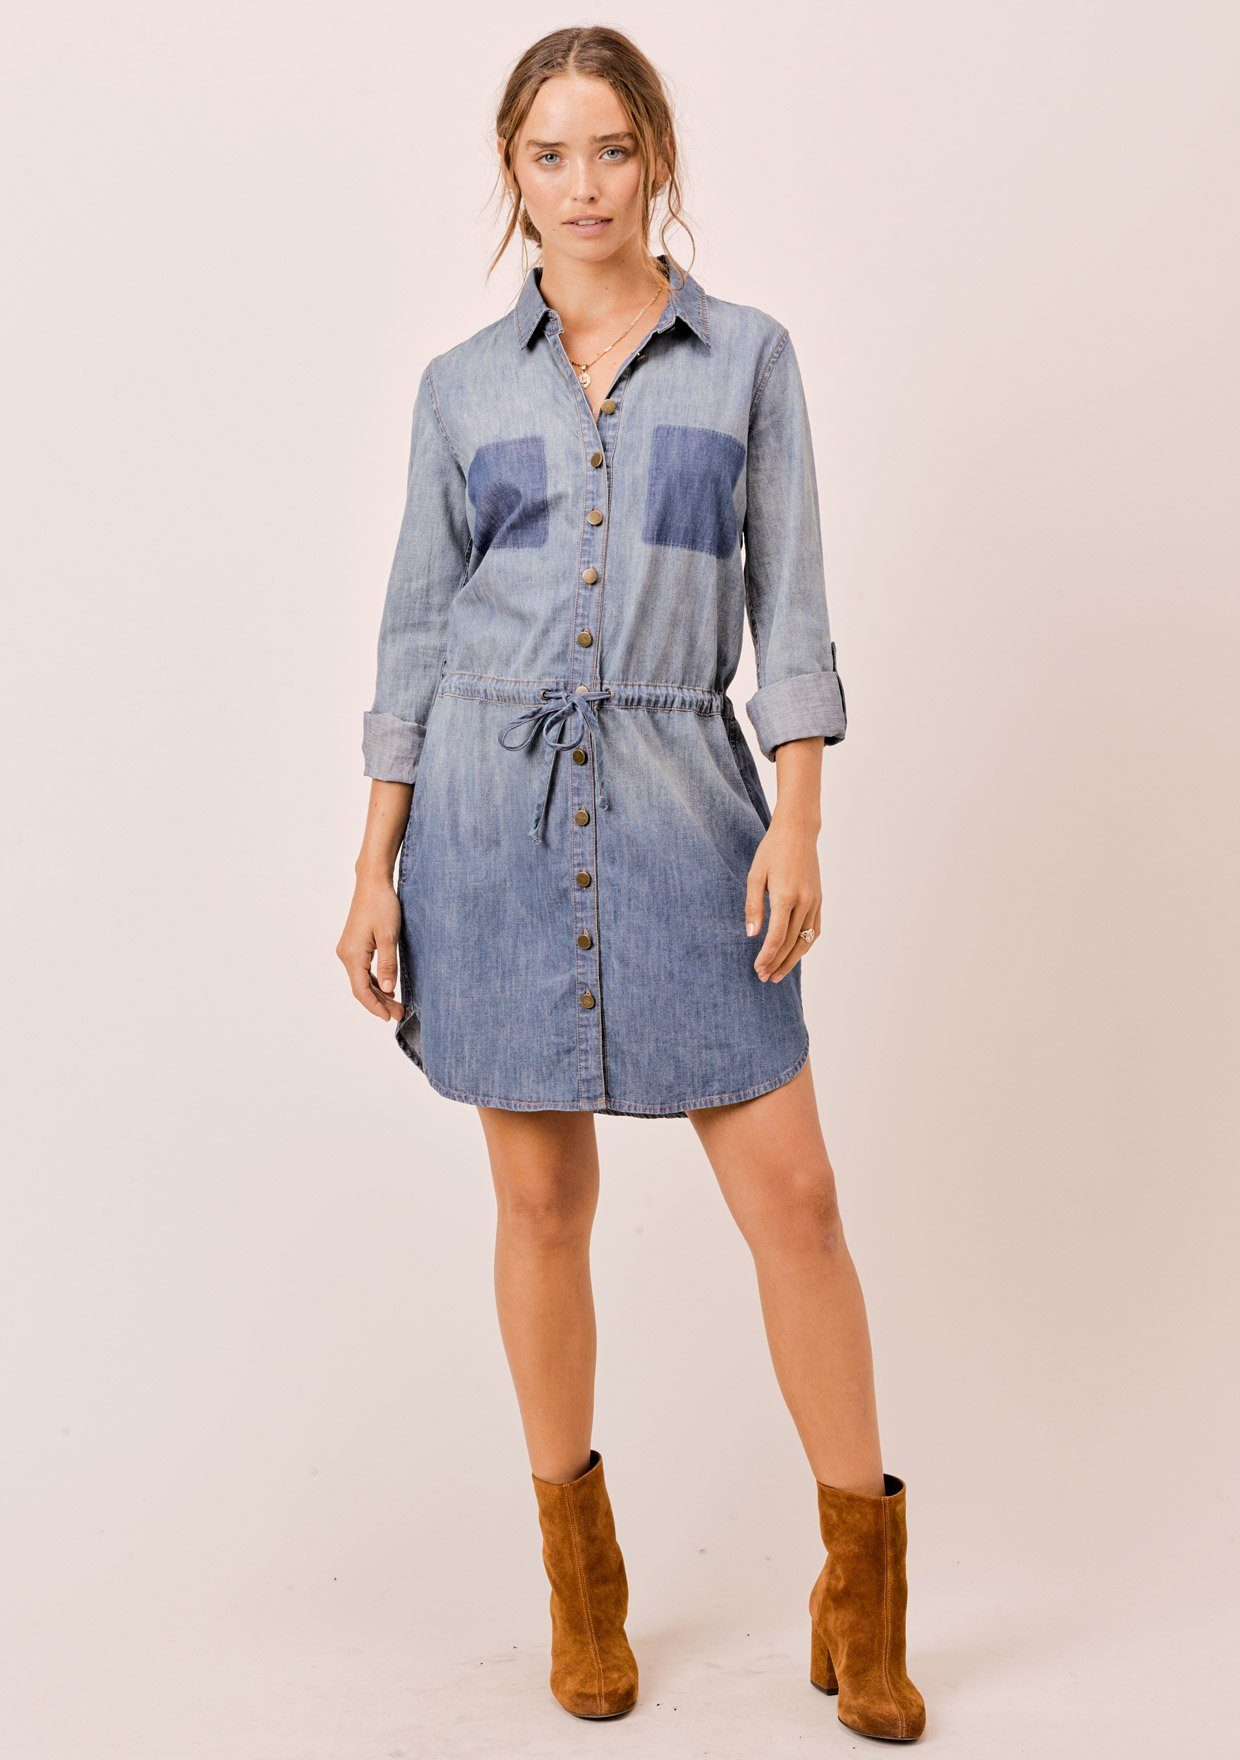 [Color: Indigo] Lovestitch Long sleeve, buttondown, cotton shirt dress with faded pocket detail.